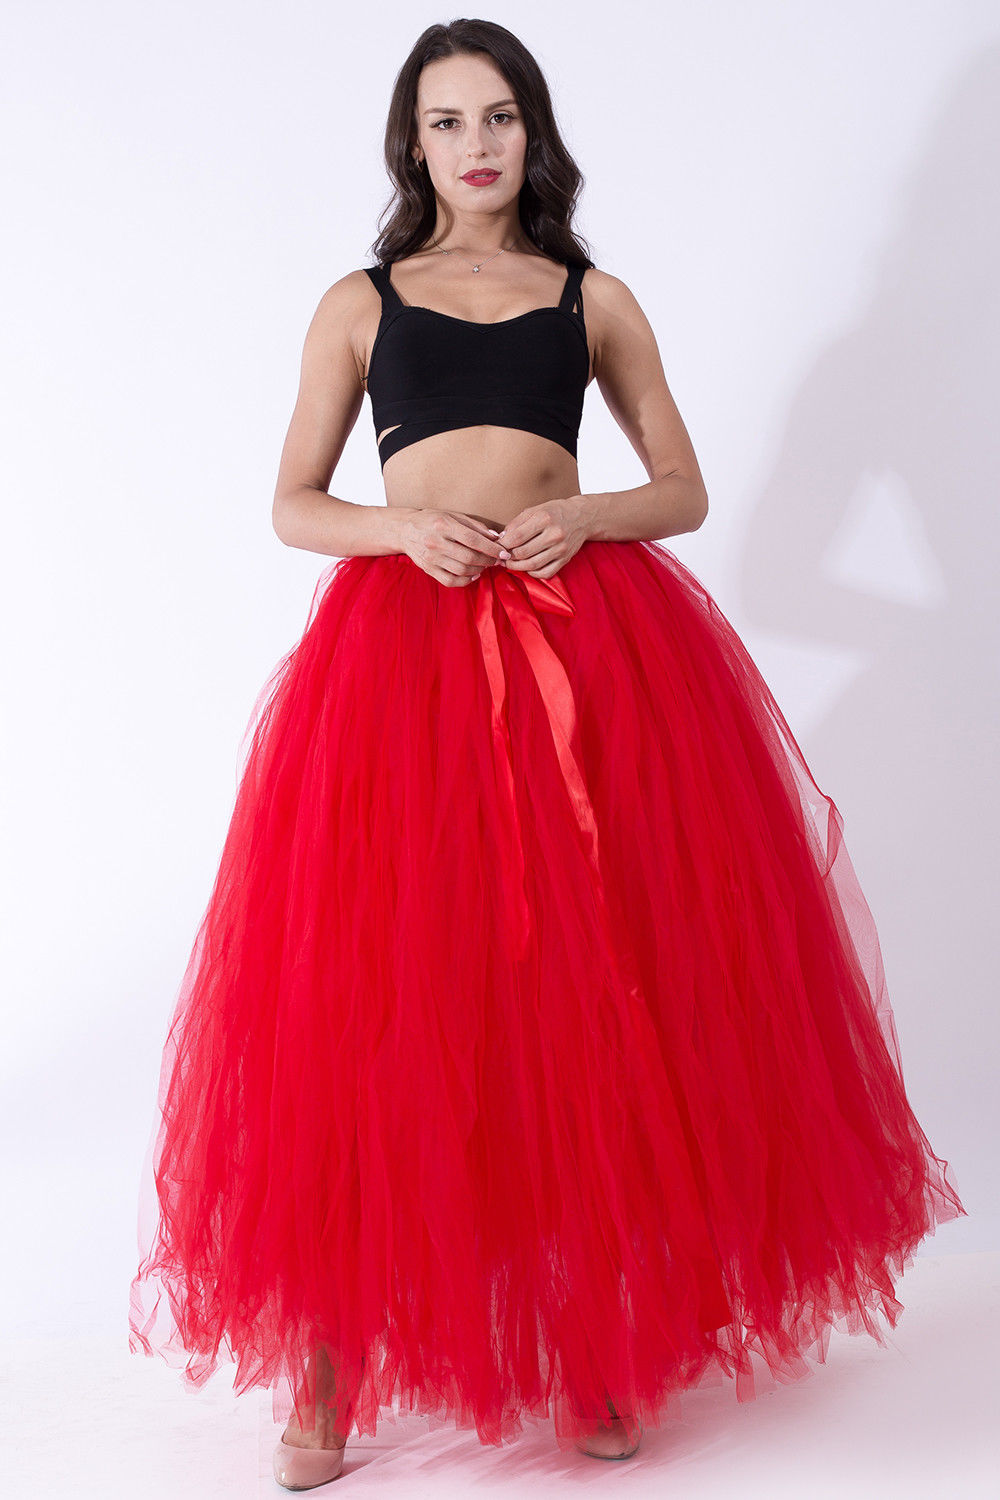 Купить с кэшбэком Pink Long Petticoat Wedding Prom Ball Gown Underskirt Layers Tulle Tutu Skirt Crinoline Party Costume Wedding Accessories